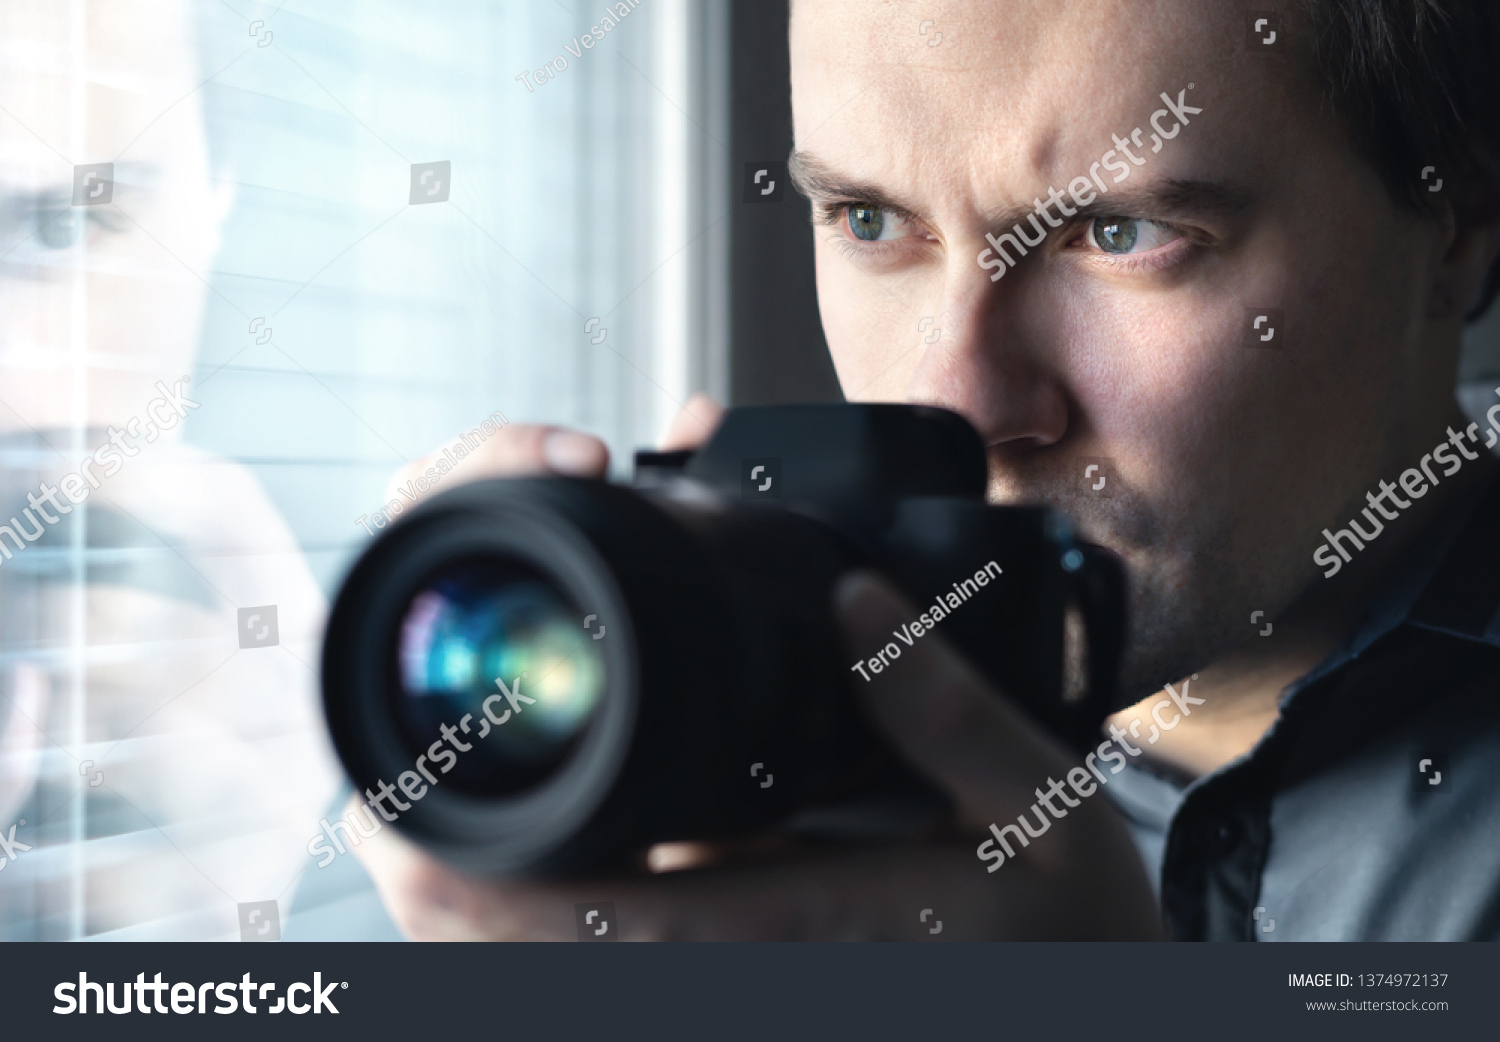 Private detective, undercover cop, investigator, spy or paparazzi with camera taking photos. Agent or police spying, investigating or following people. Espionage or surveillance concept. Man hiding. #1374972137